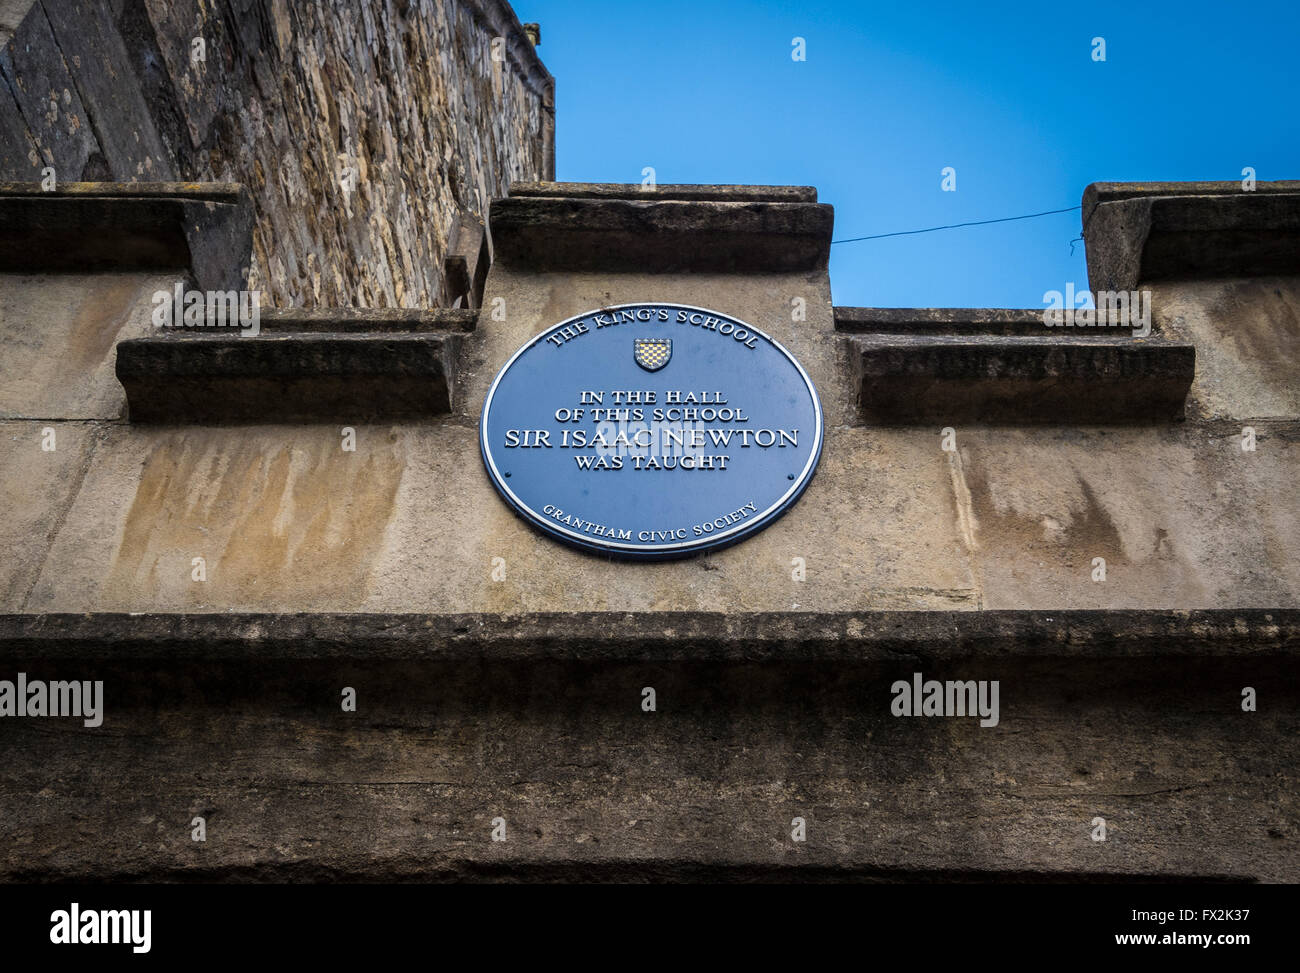 Plaque on The Original King's School building in Grantham, Lincolnshire, UK, where Sir Isaac Newton was taught. - Stock Image